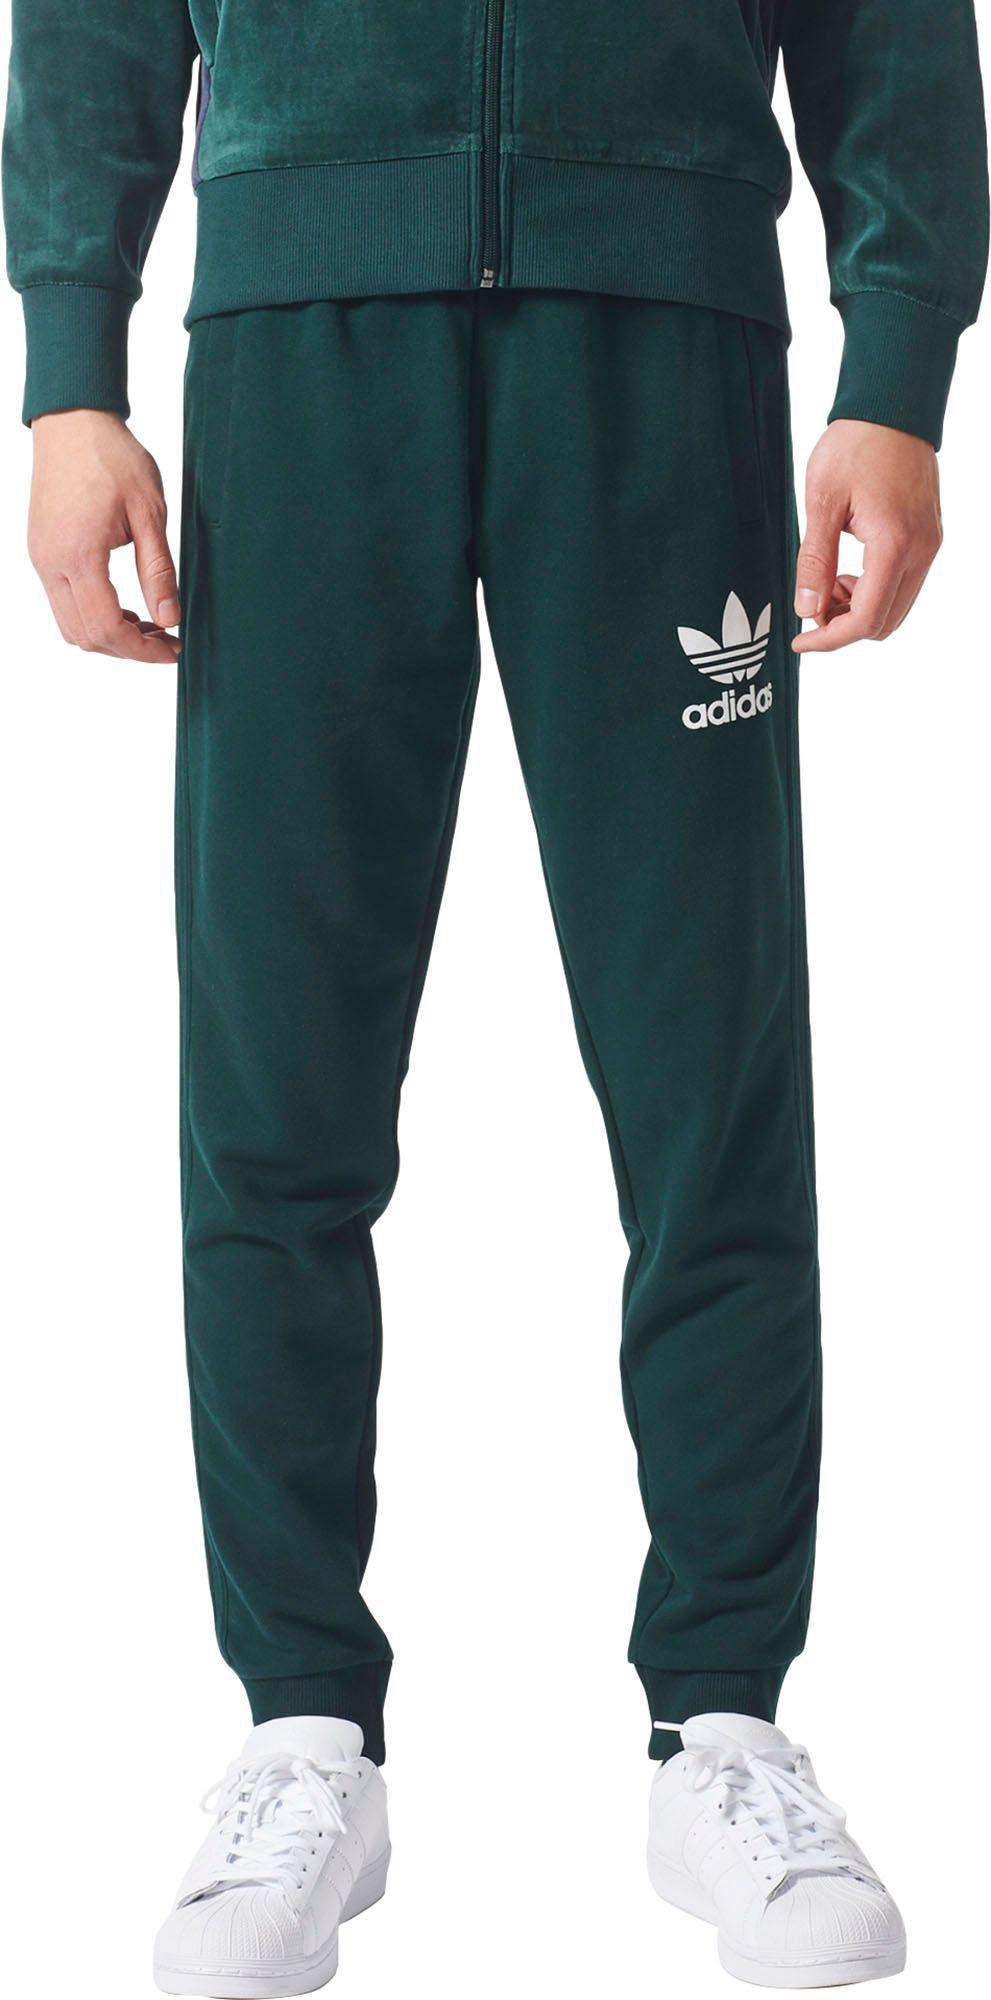 5a7629b3f54b Lyst - adidas Originals 3-stripes French Terry Sweat Pants in Green ...